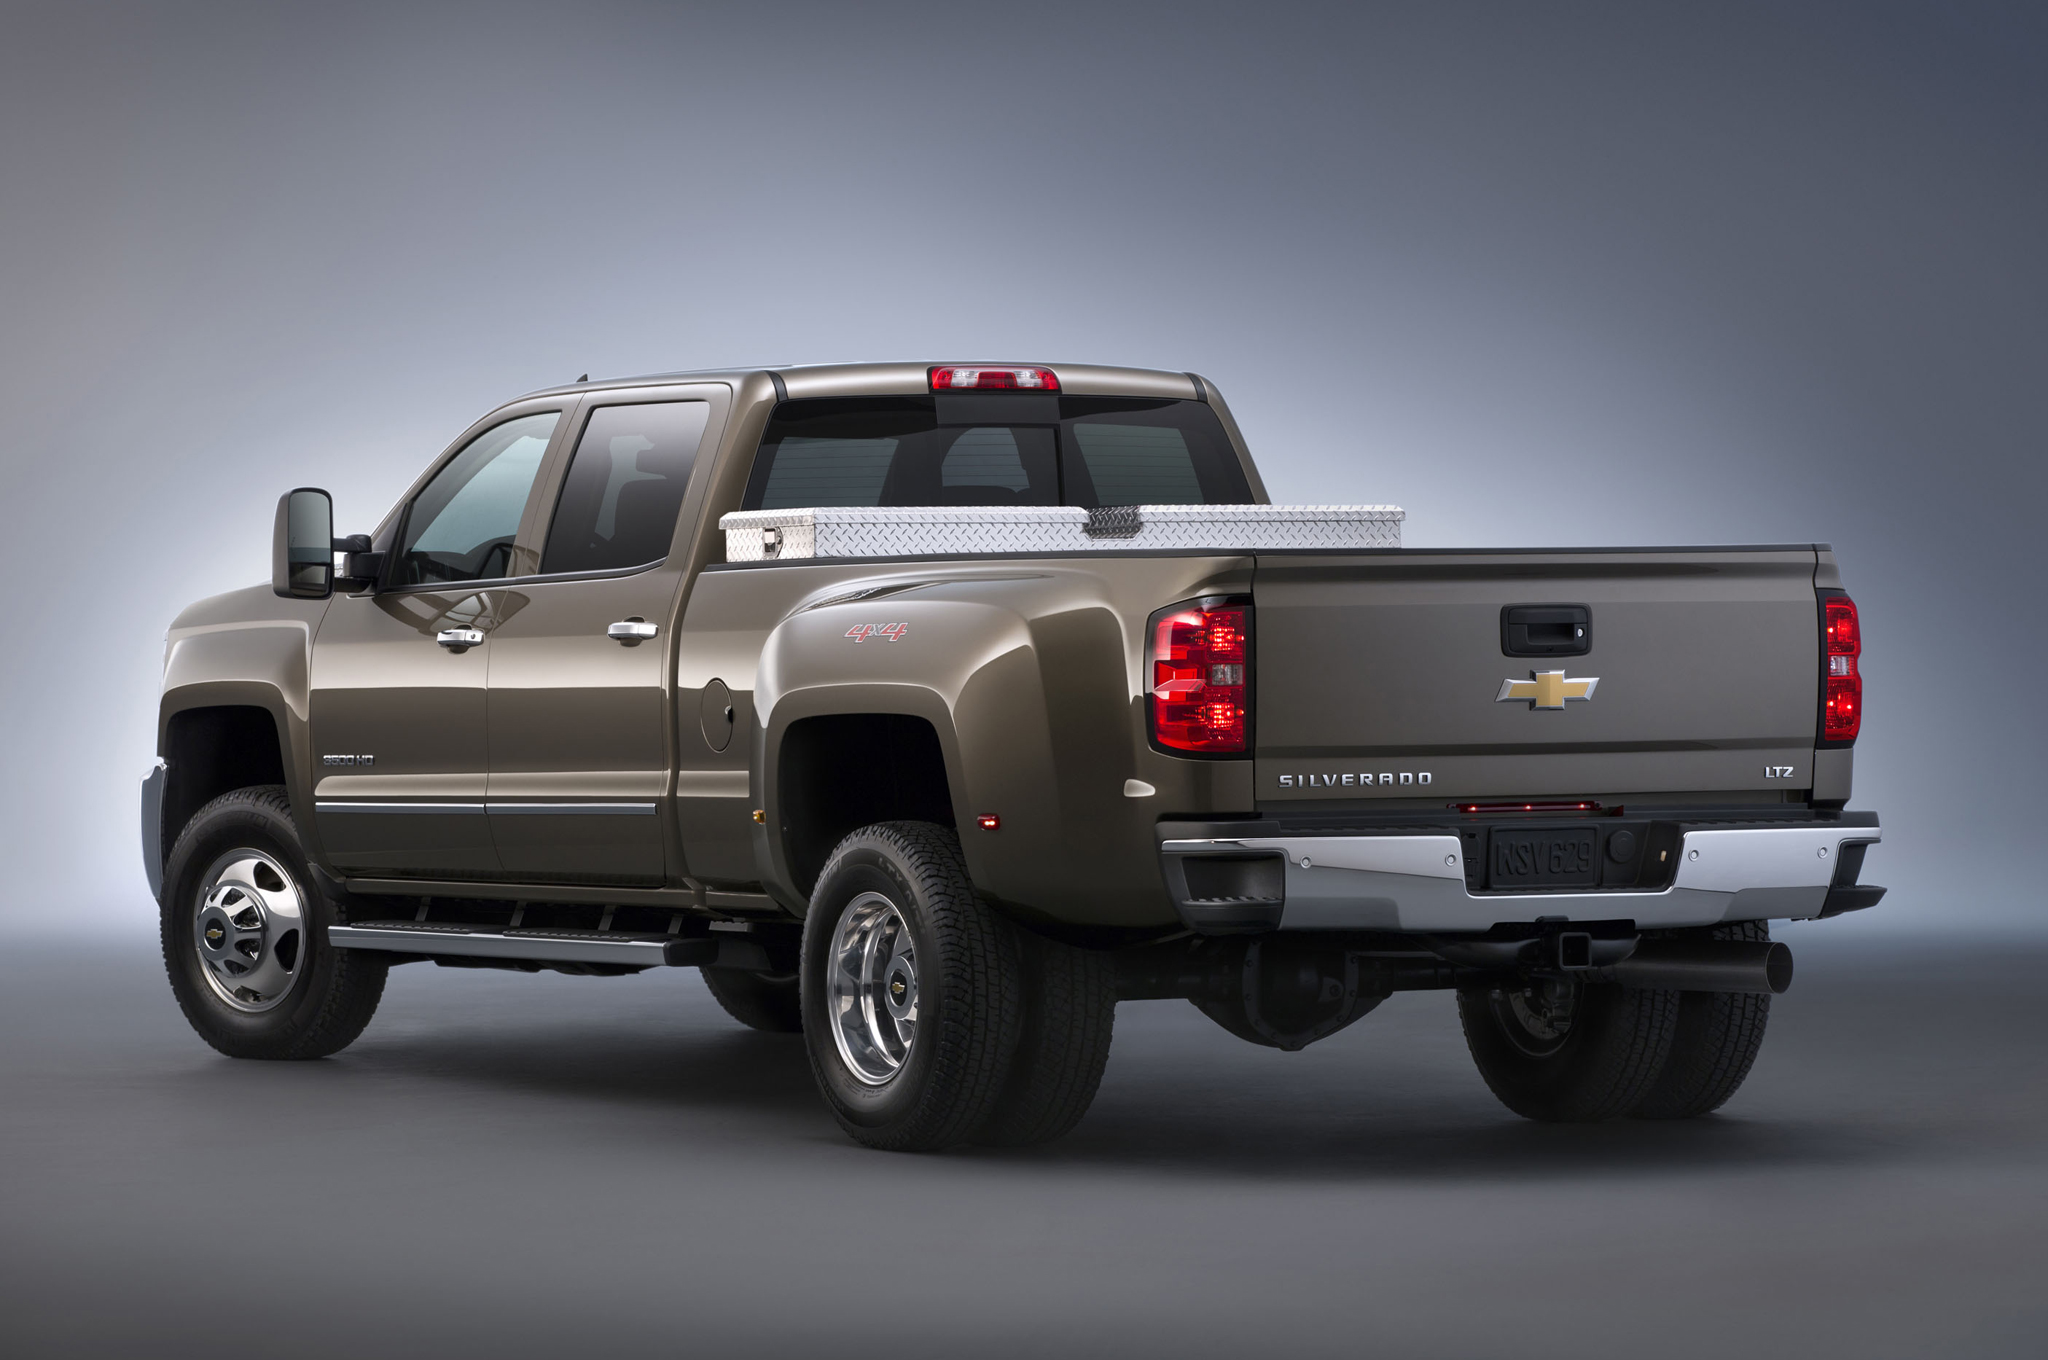 2015 GMC Sierra 3500hd #16